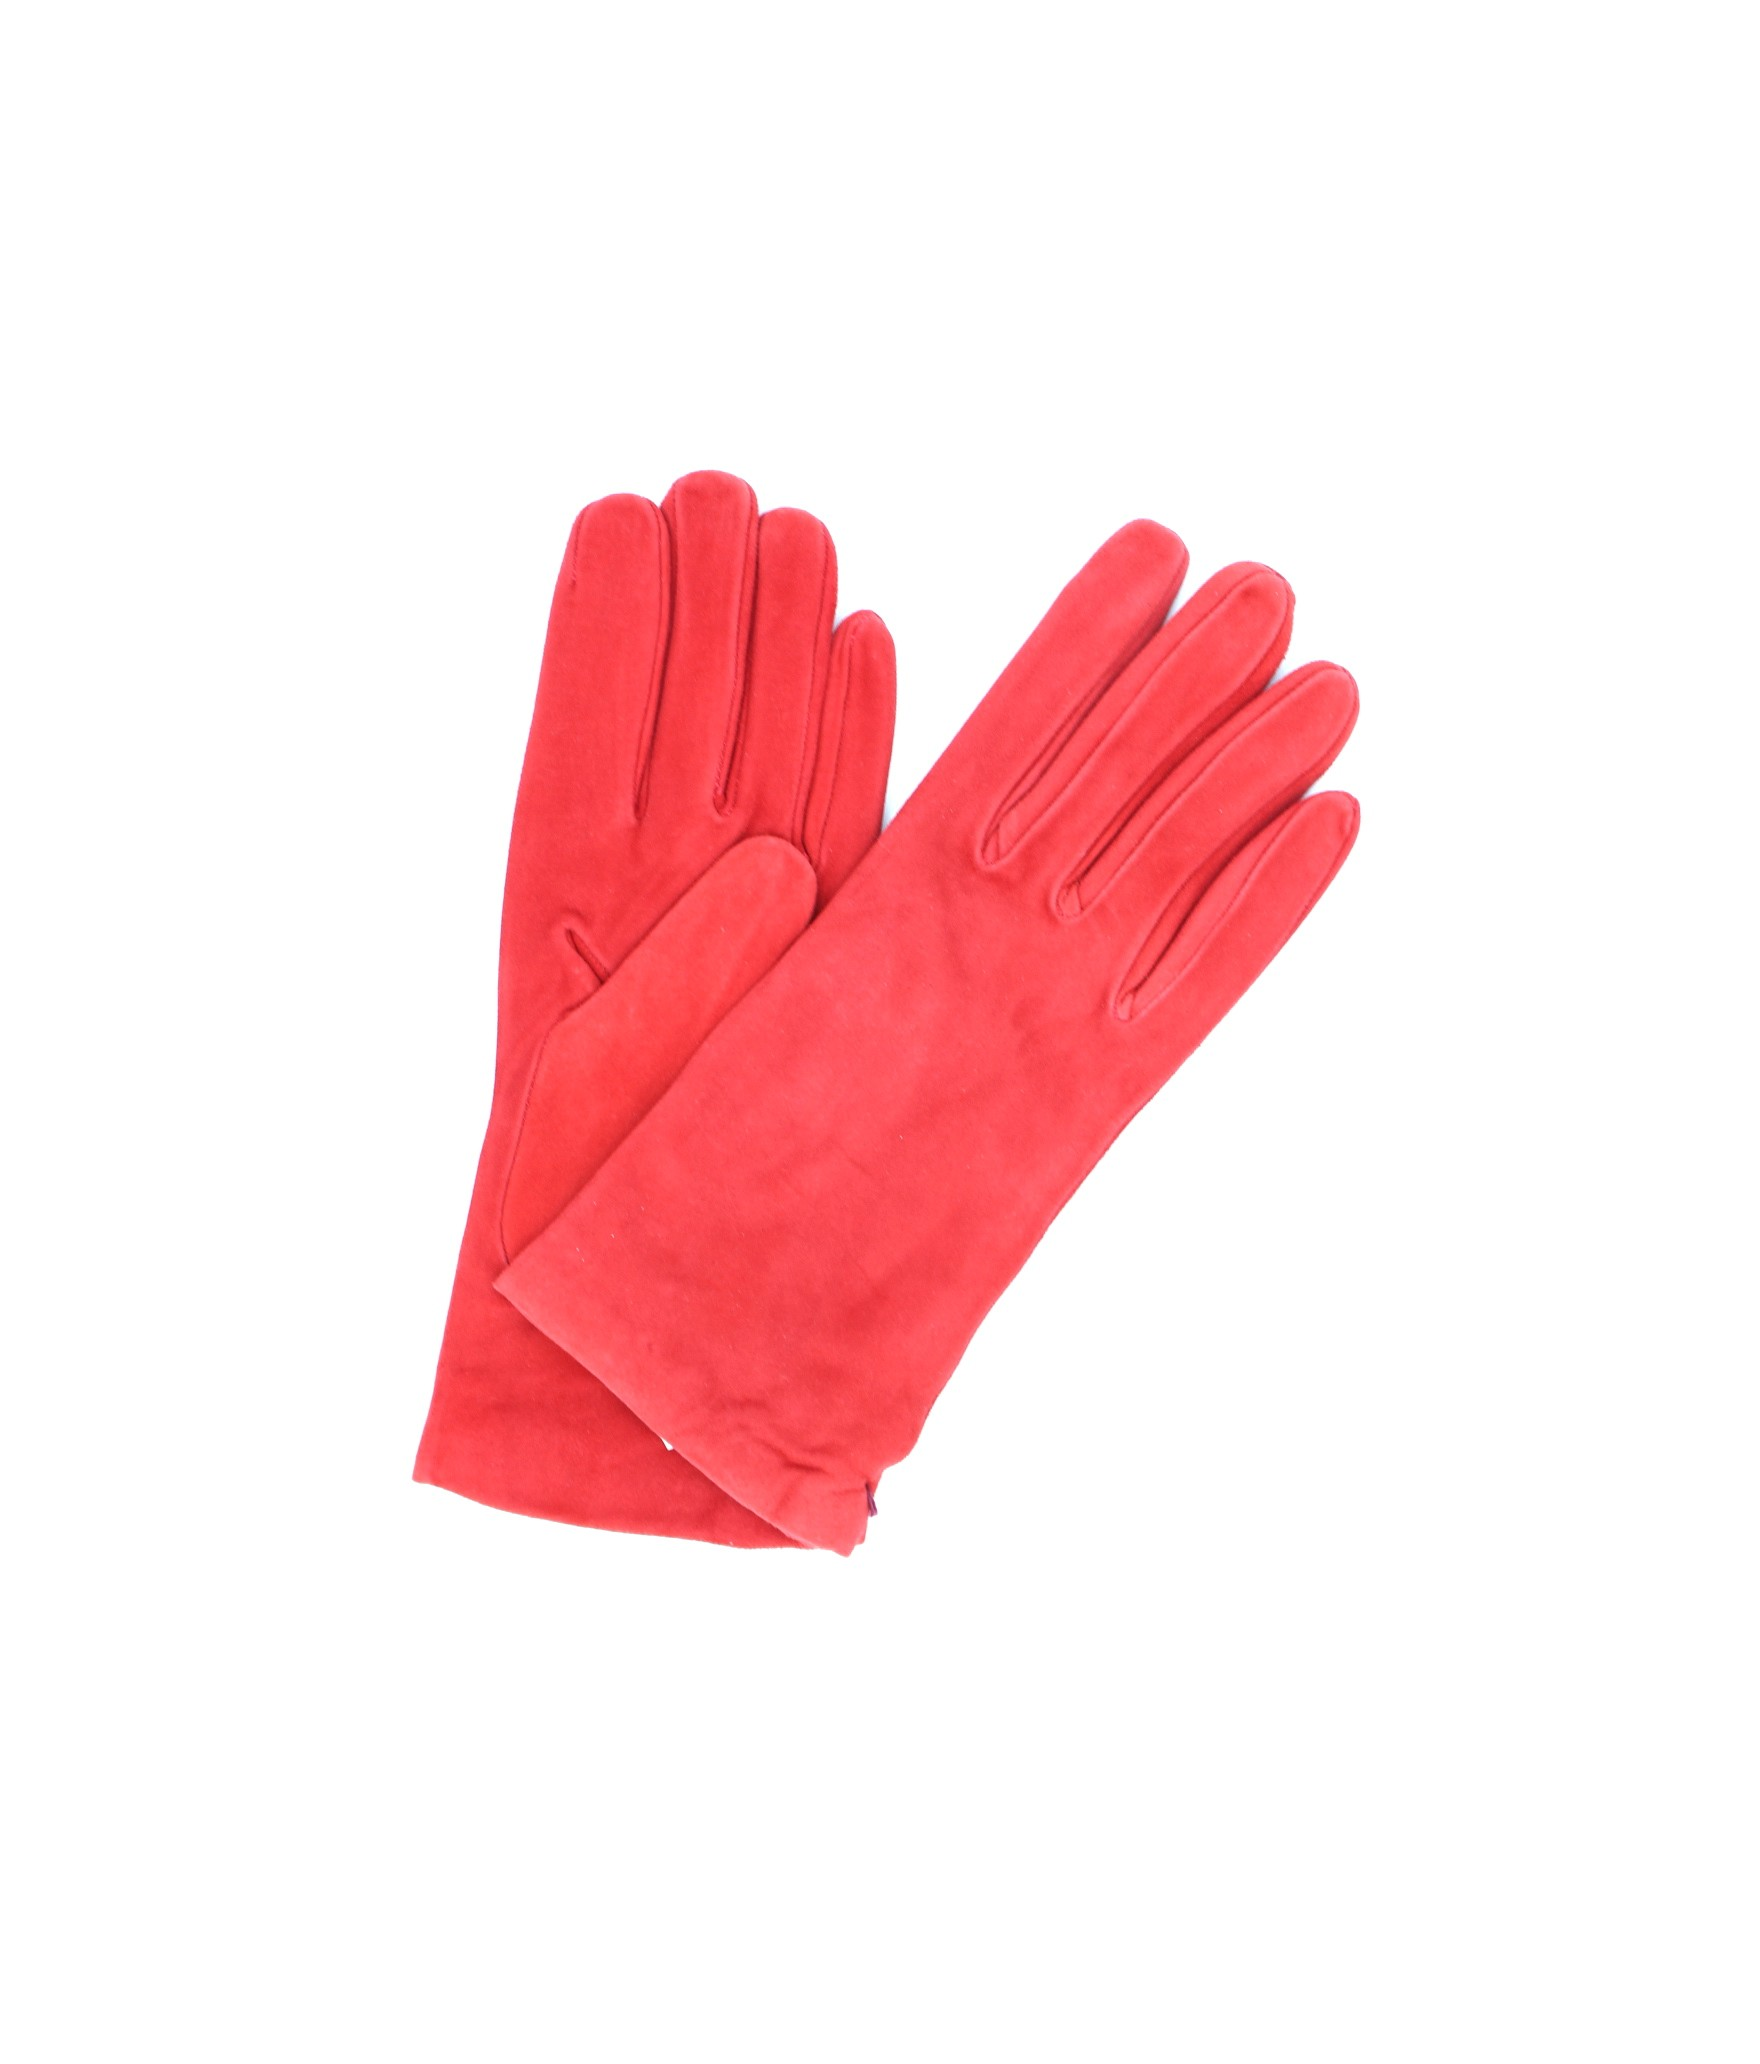 Suede Nappa leather gloves lined Cashmere Red Sermoneta Gloves